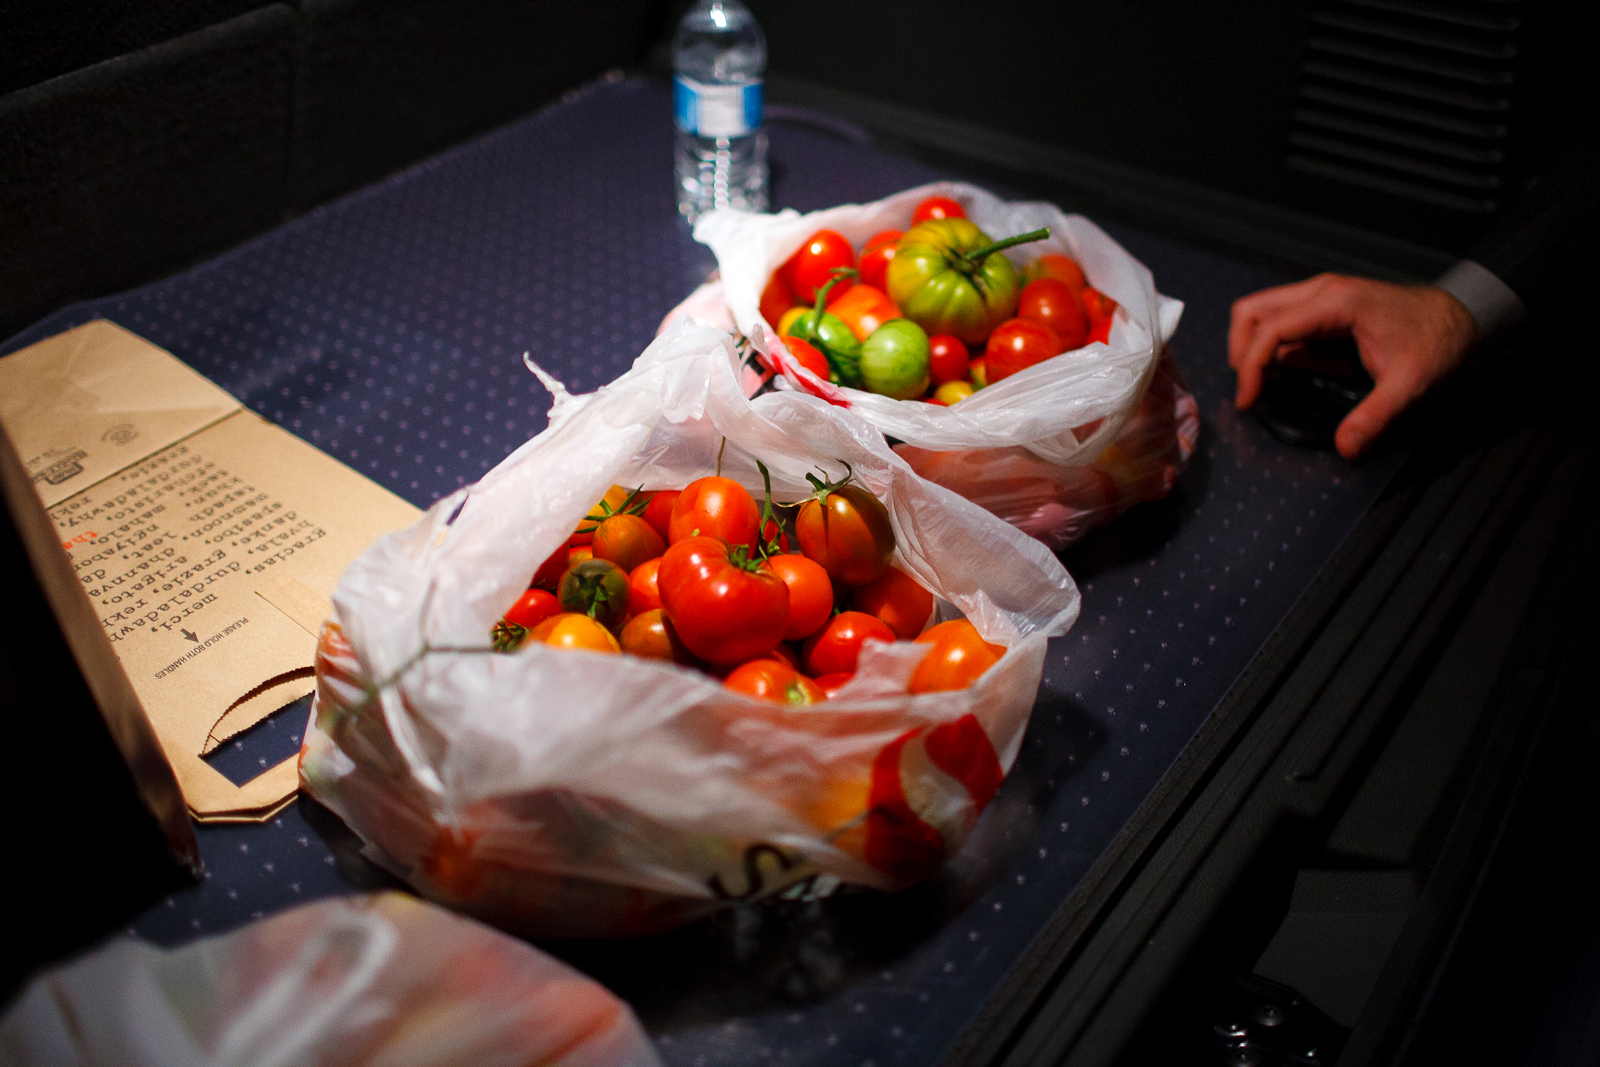 These tomatoes made it from the vine, into my car, and onto my flight back to NYC